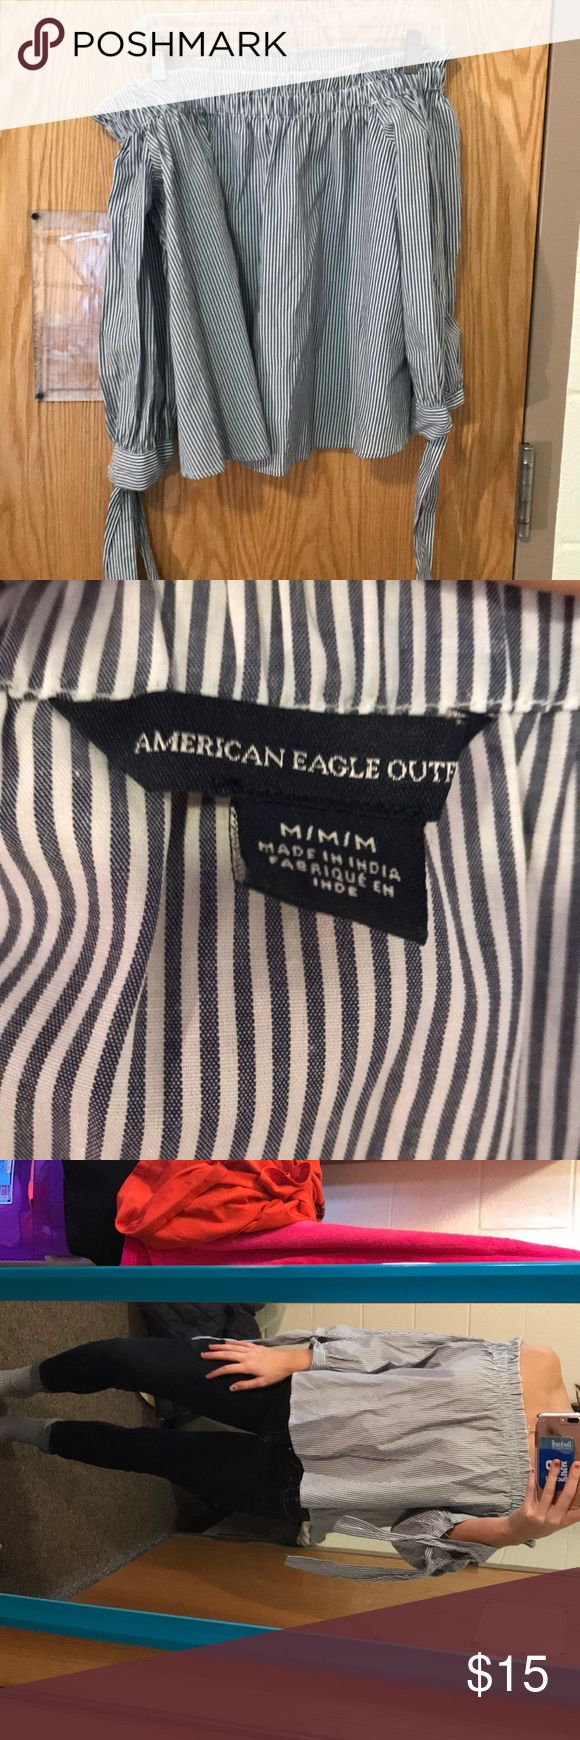 Off the should American eagle shirt Cute off the shoulder shirt. Never worn but no tag. In great shape! American Eagle Outfitters Tops Blouses